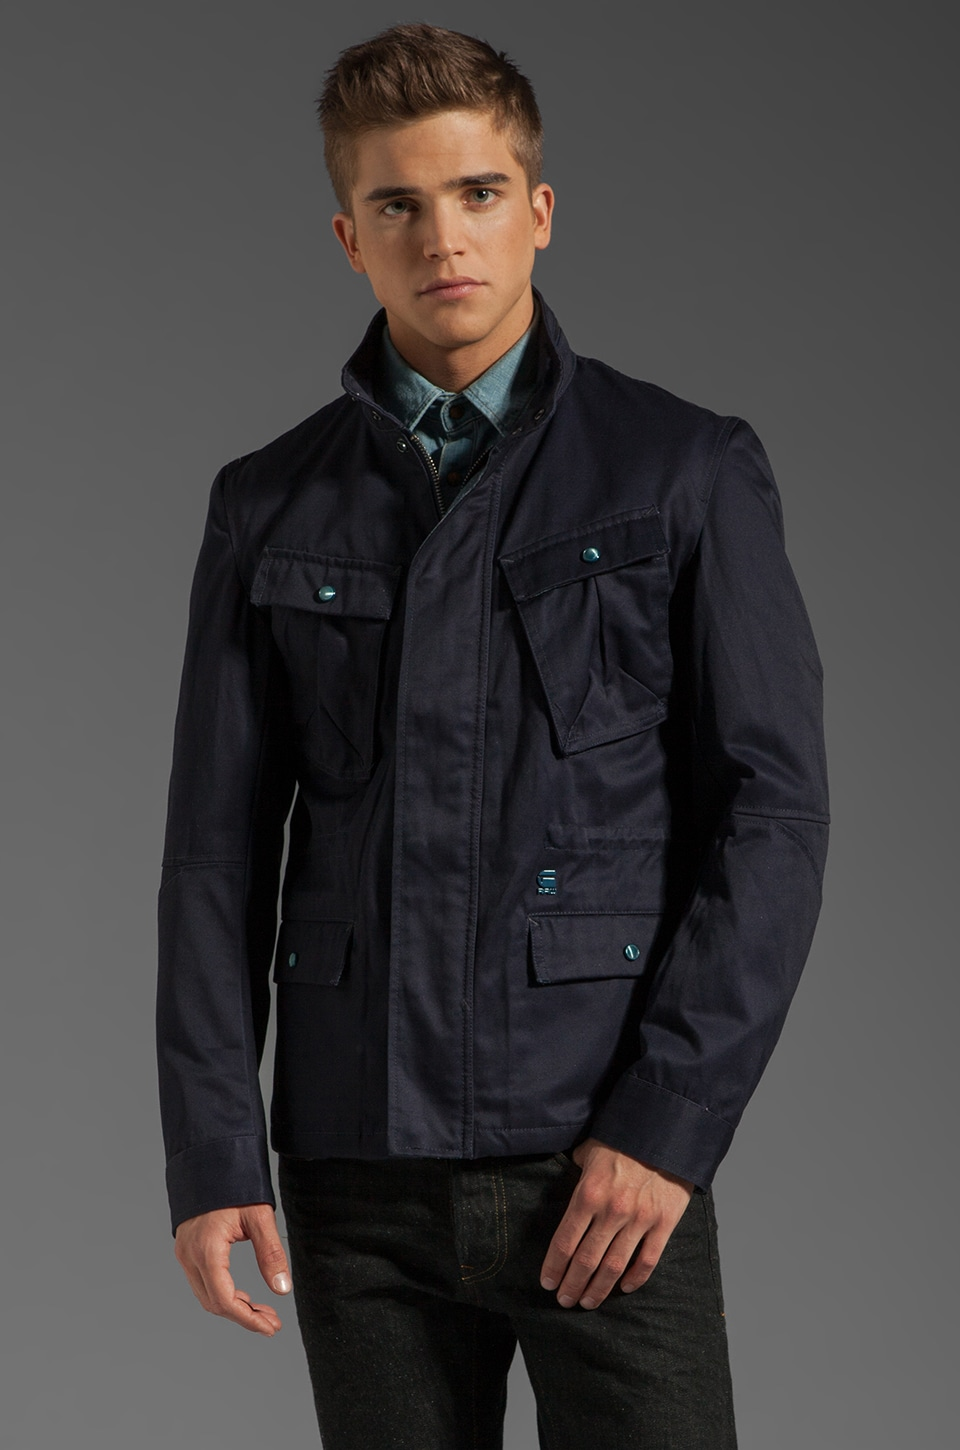 G-Star Austin City Overshirt in Naval Blue